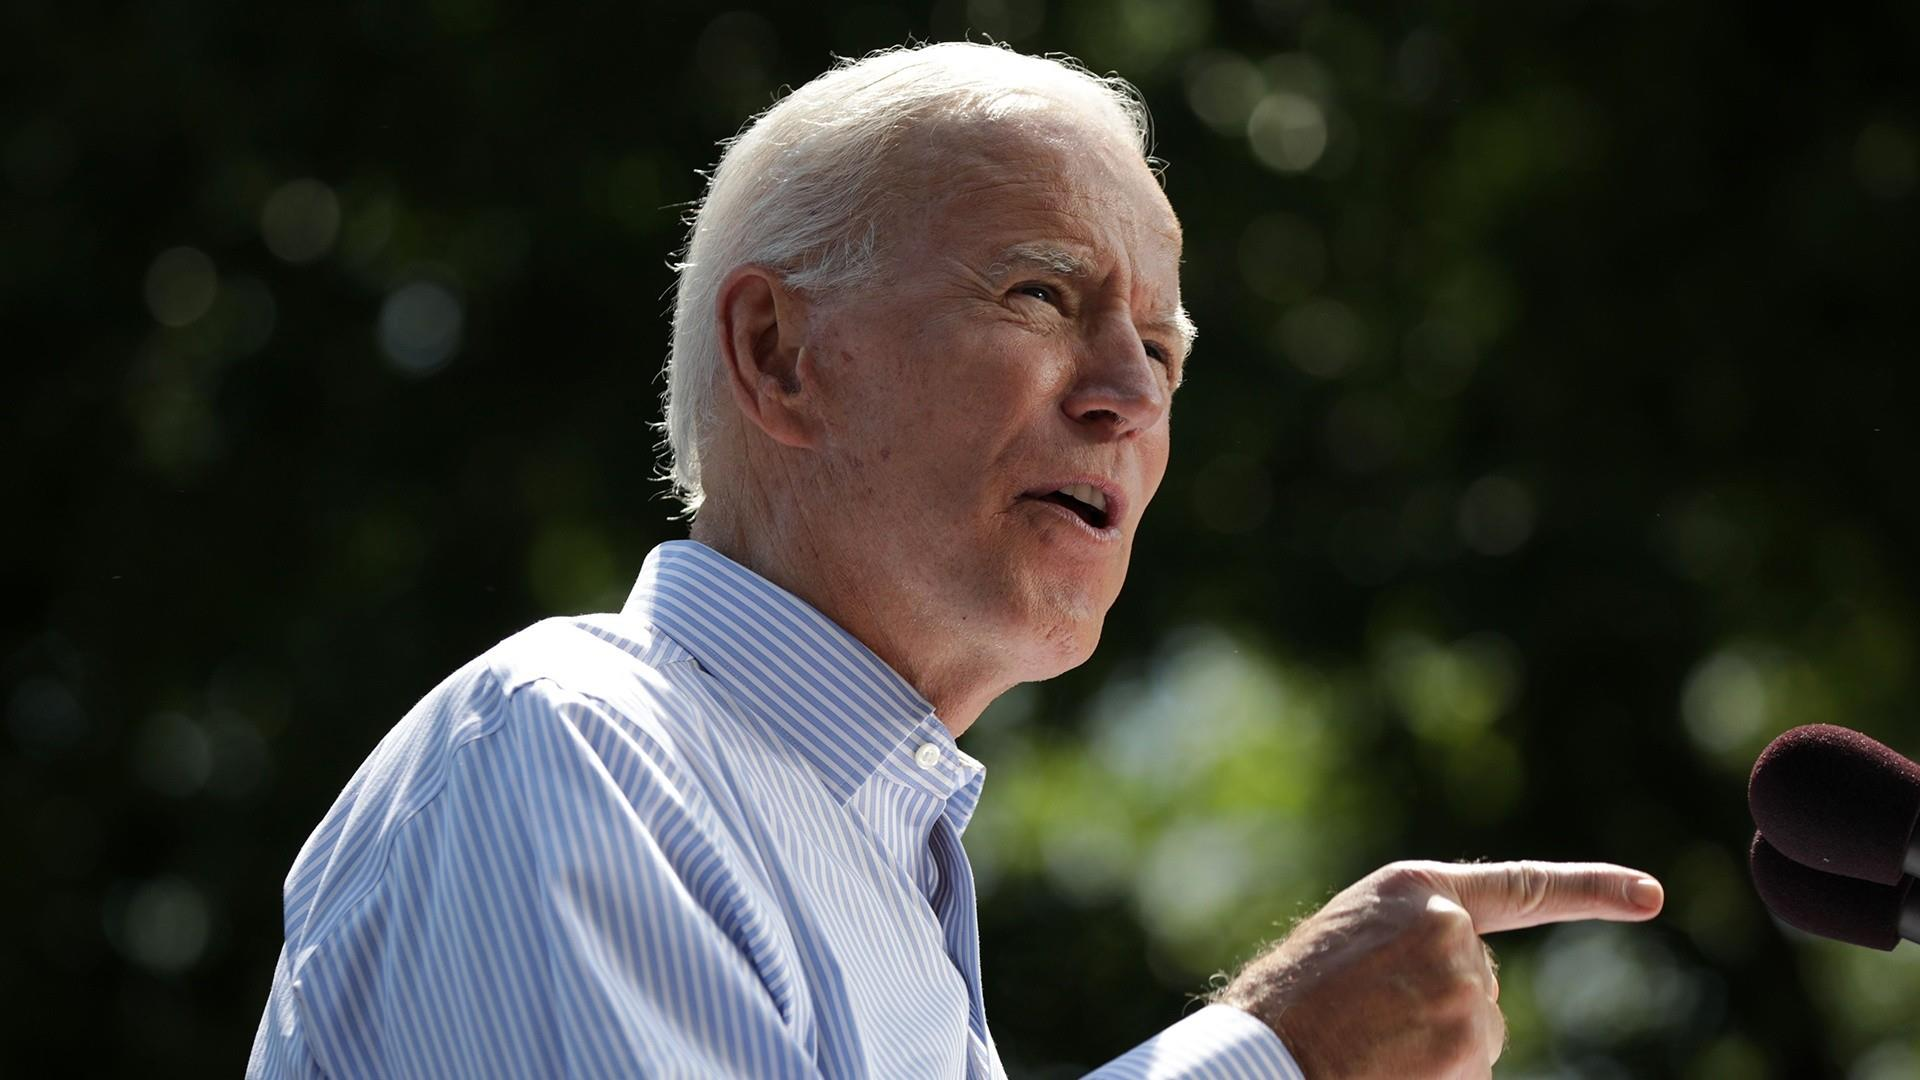 Joe Biden refuses to apologize for segregationist comments